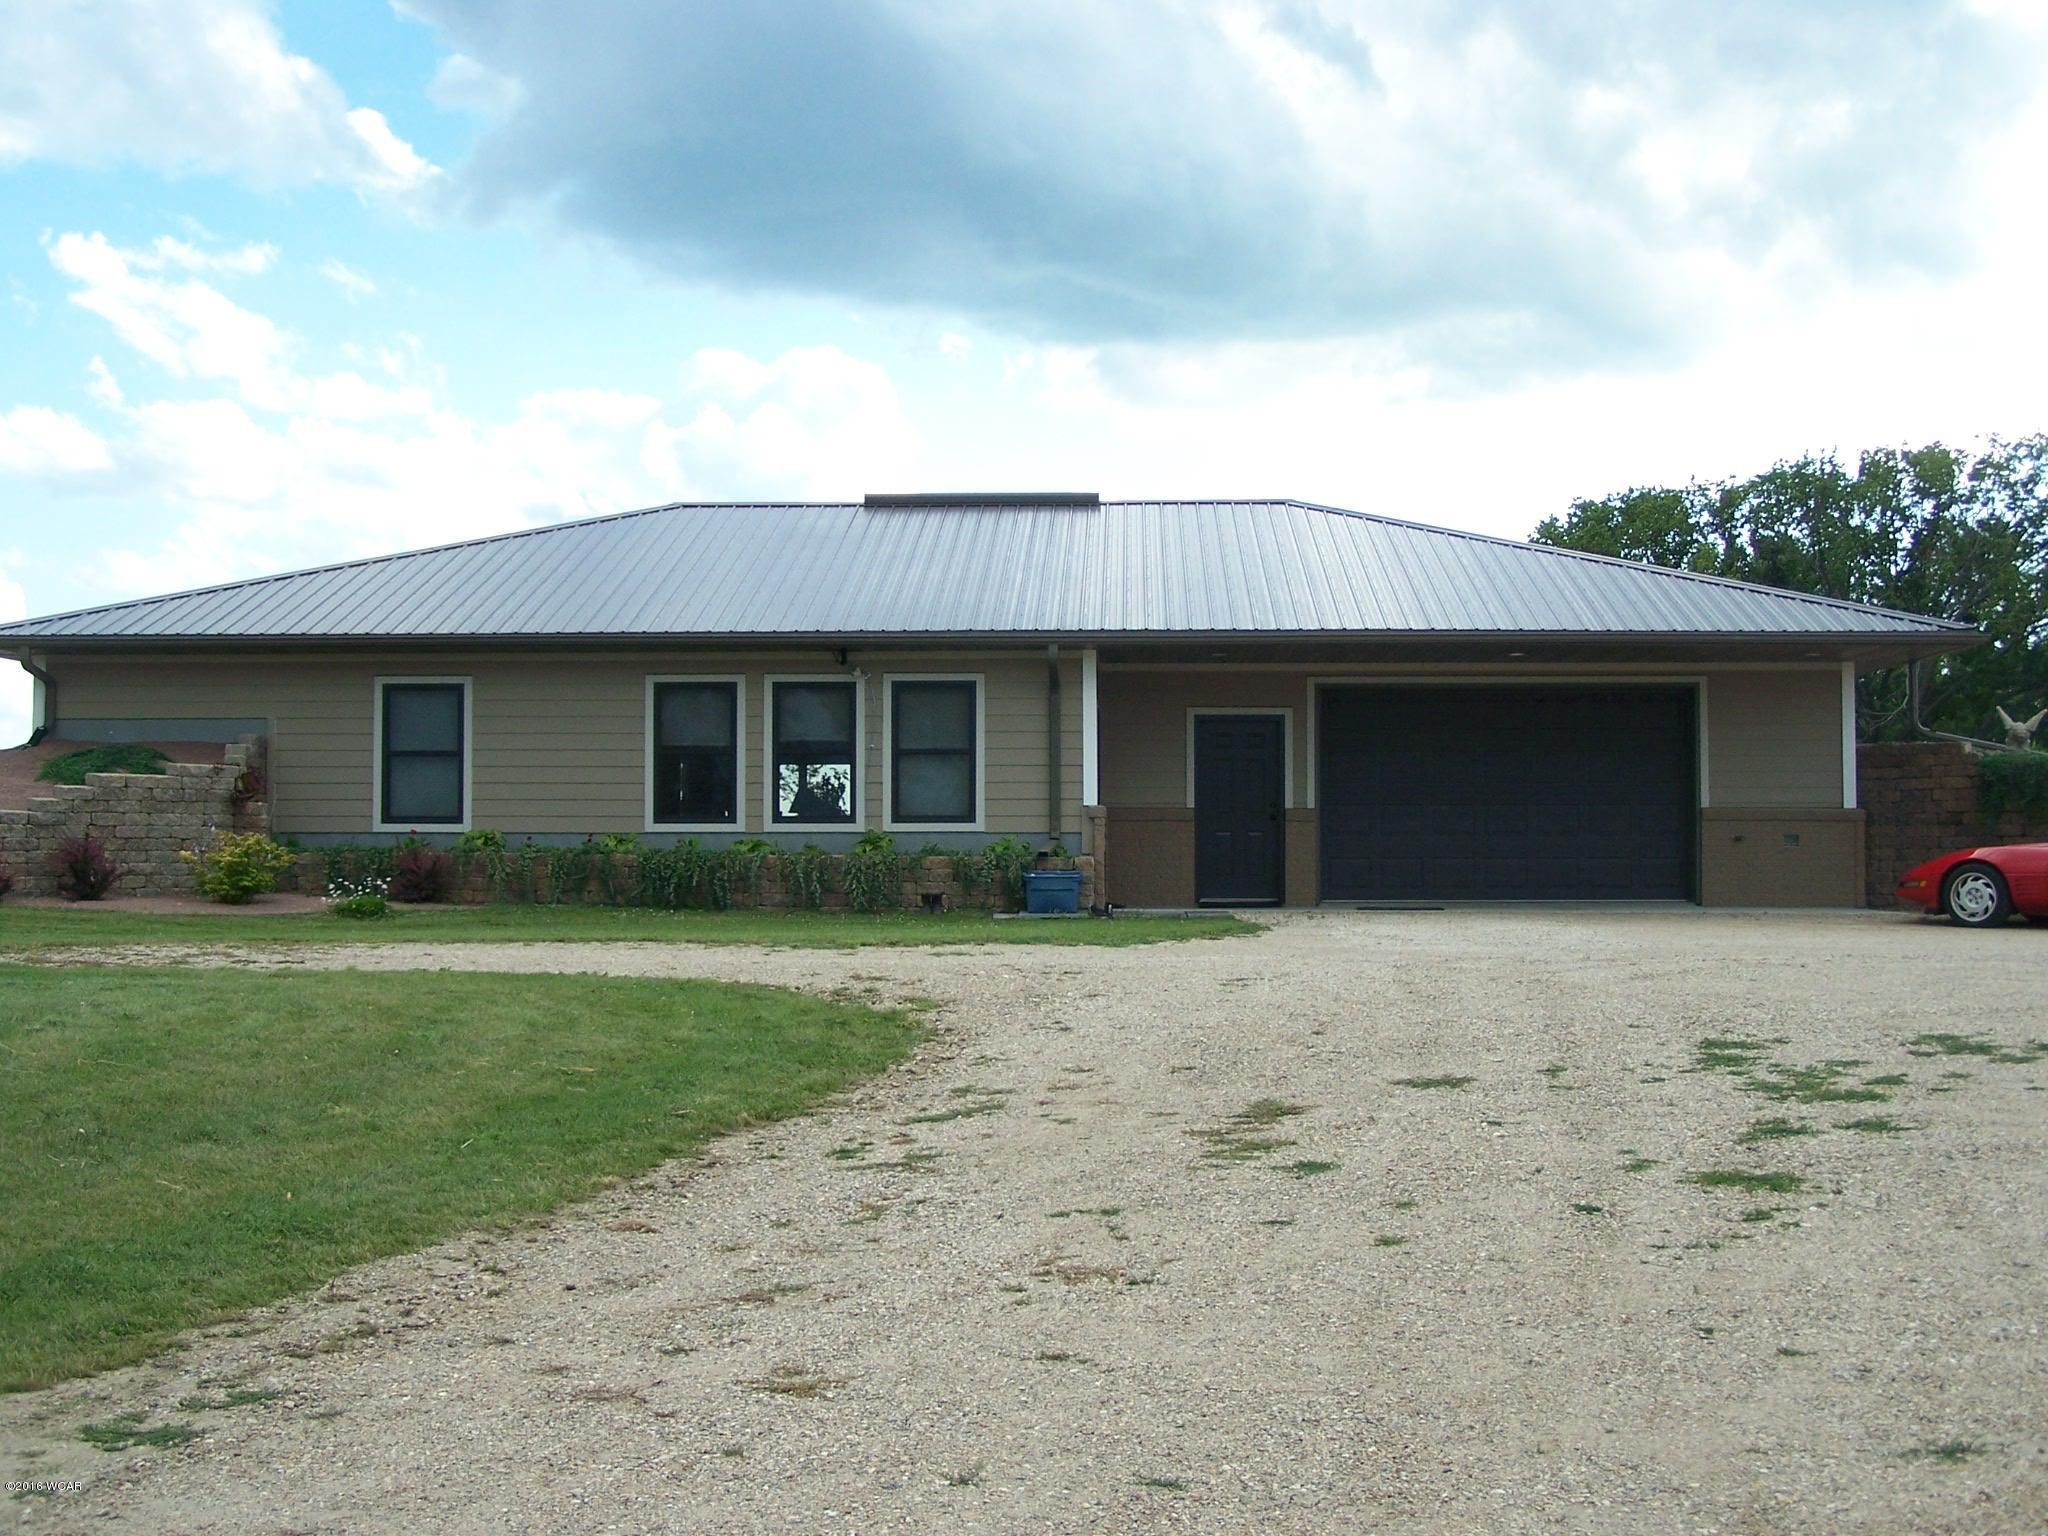 7309 State Hwy 27, Wheaton MN 56296 - Photo 1